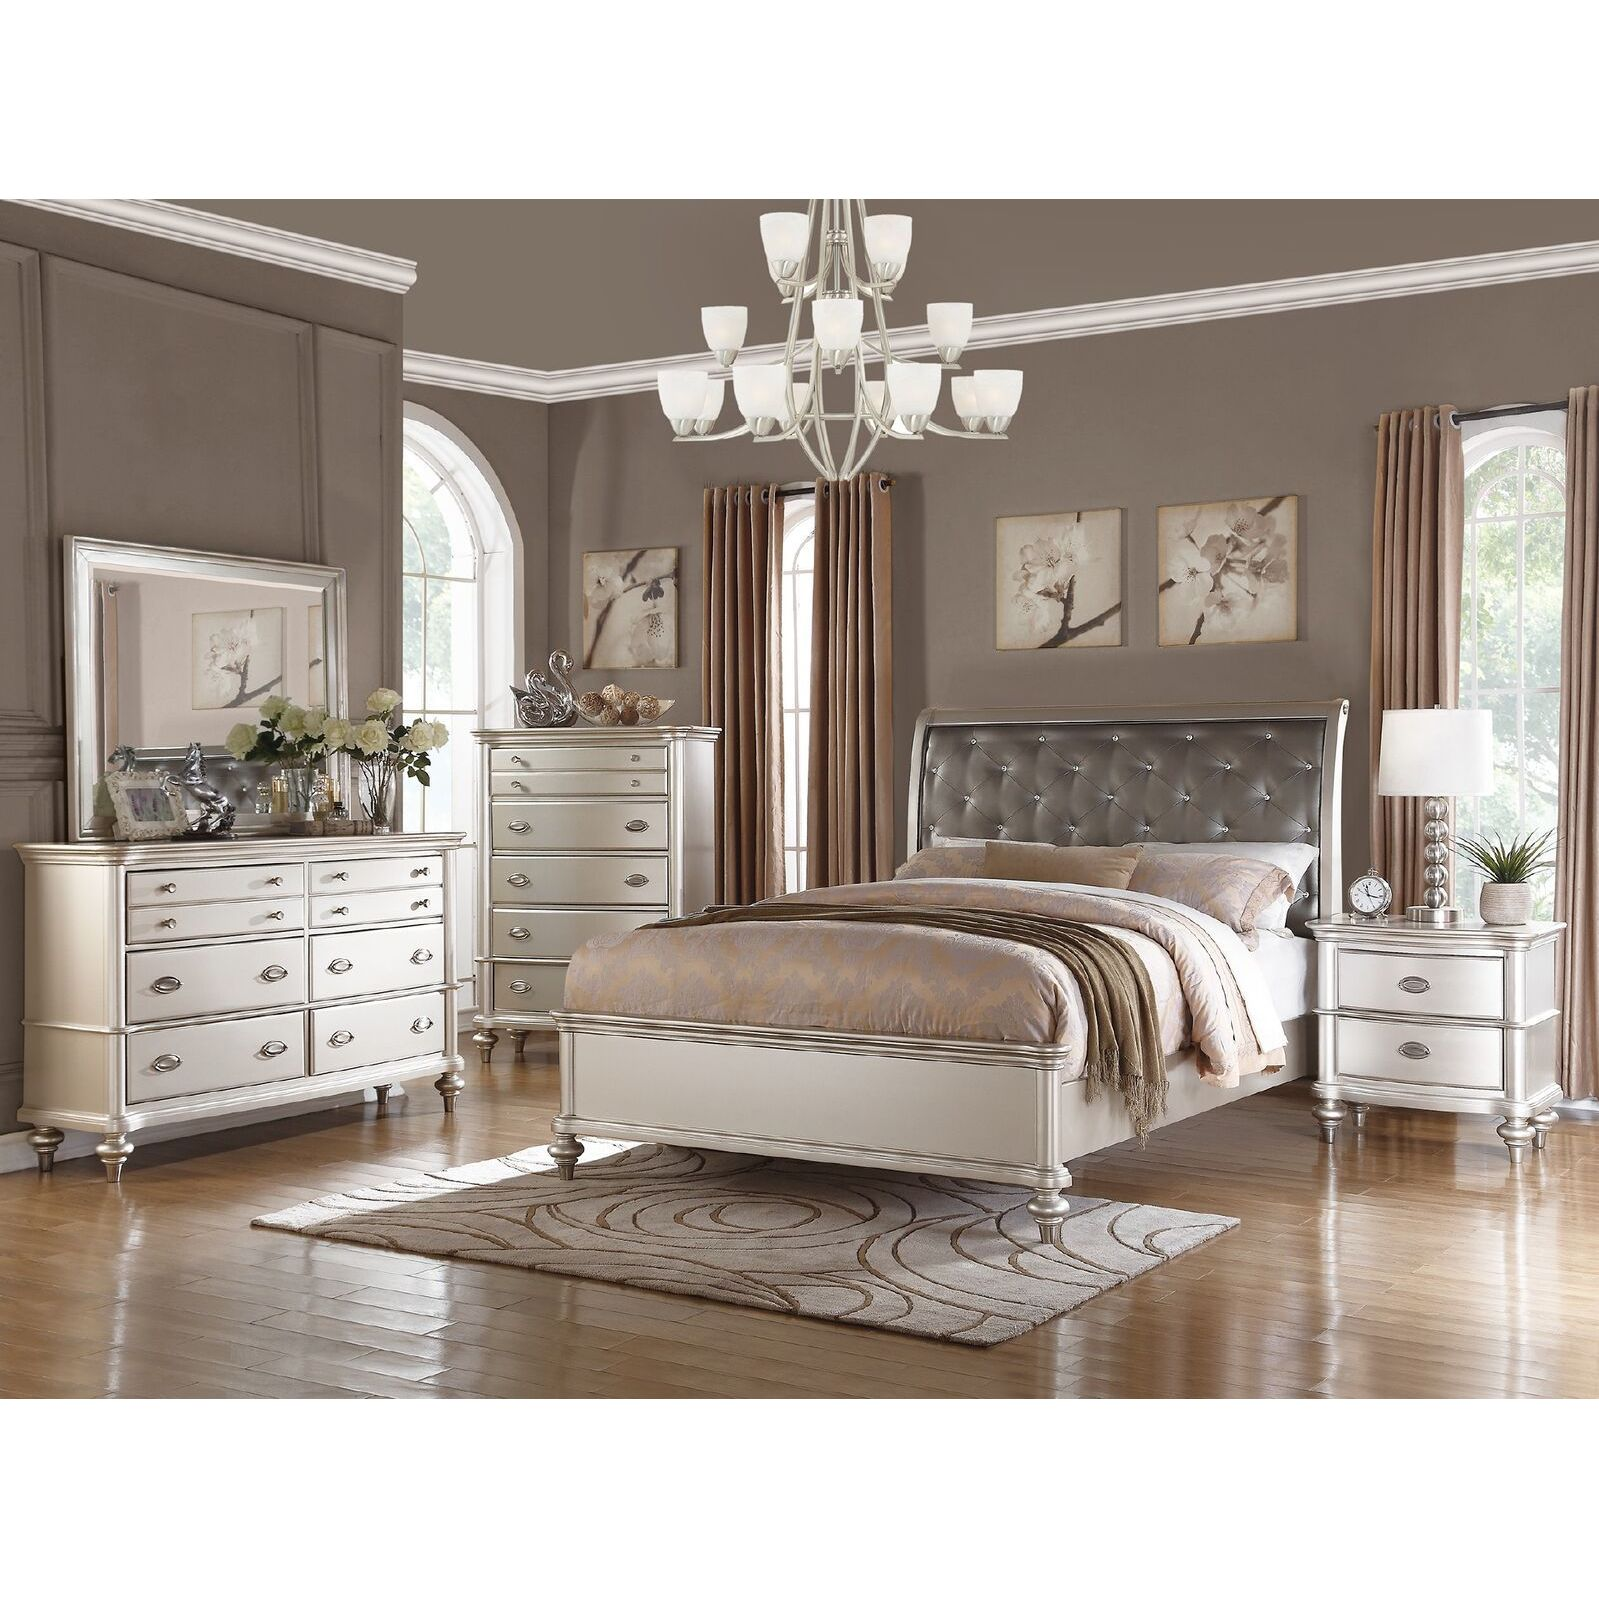 Perfect 5 Piece Bedroom Set Concept